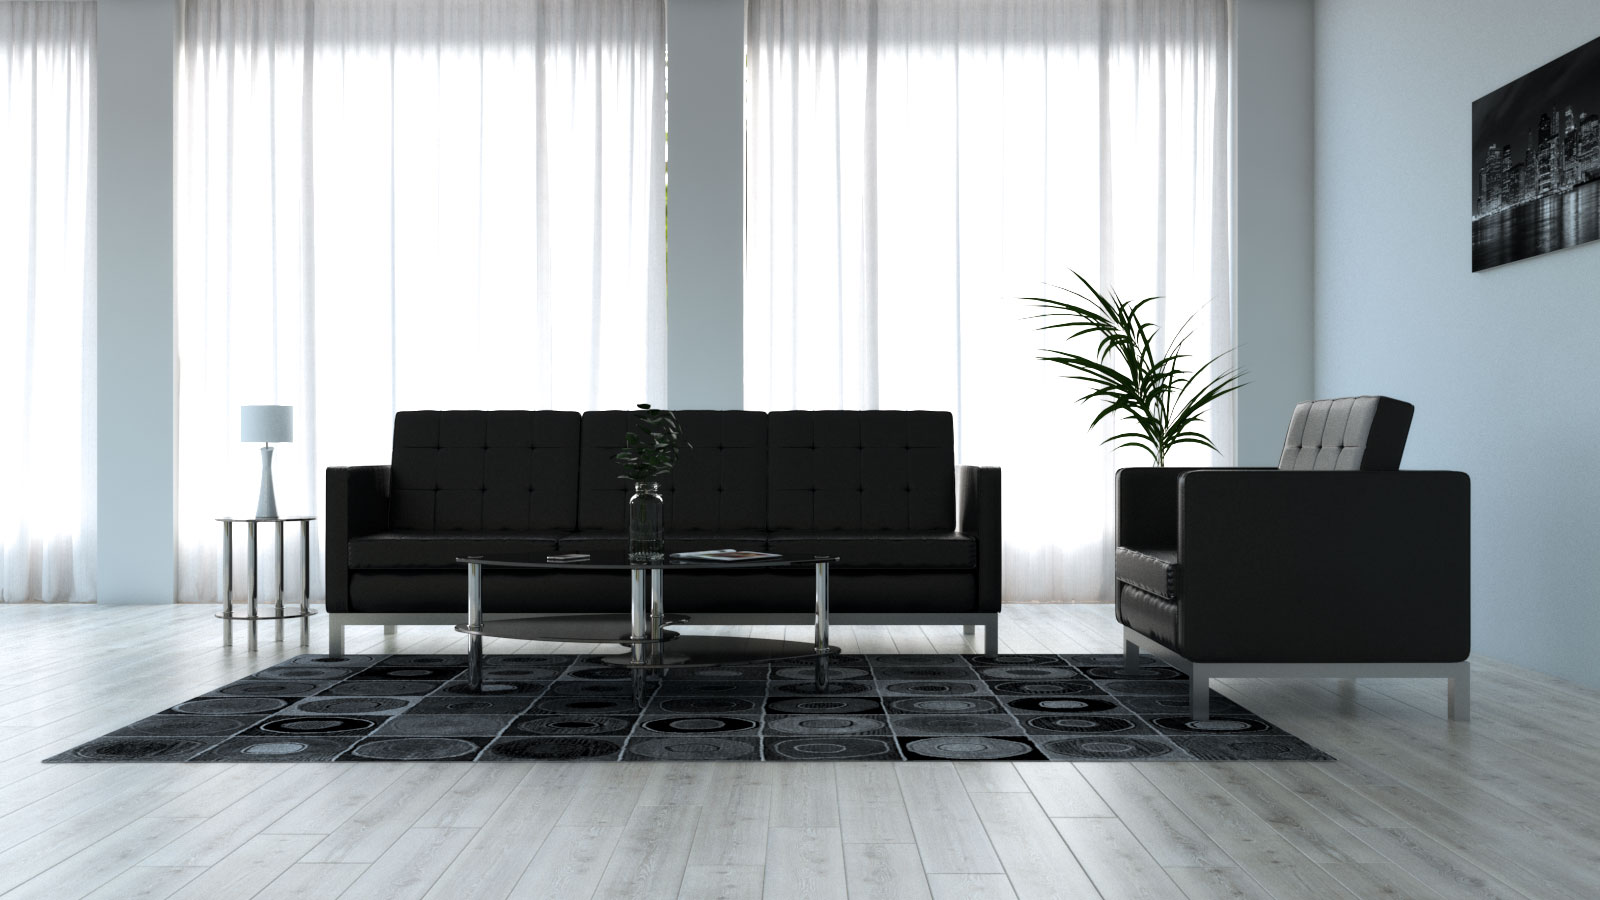 Living room decorated with black furniture